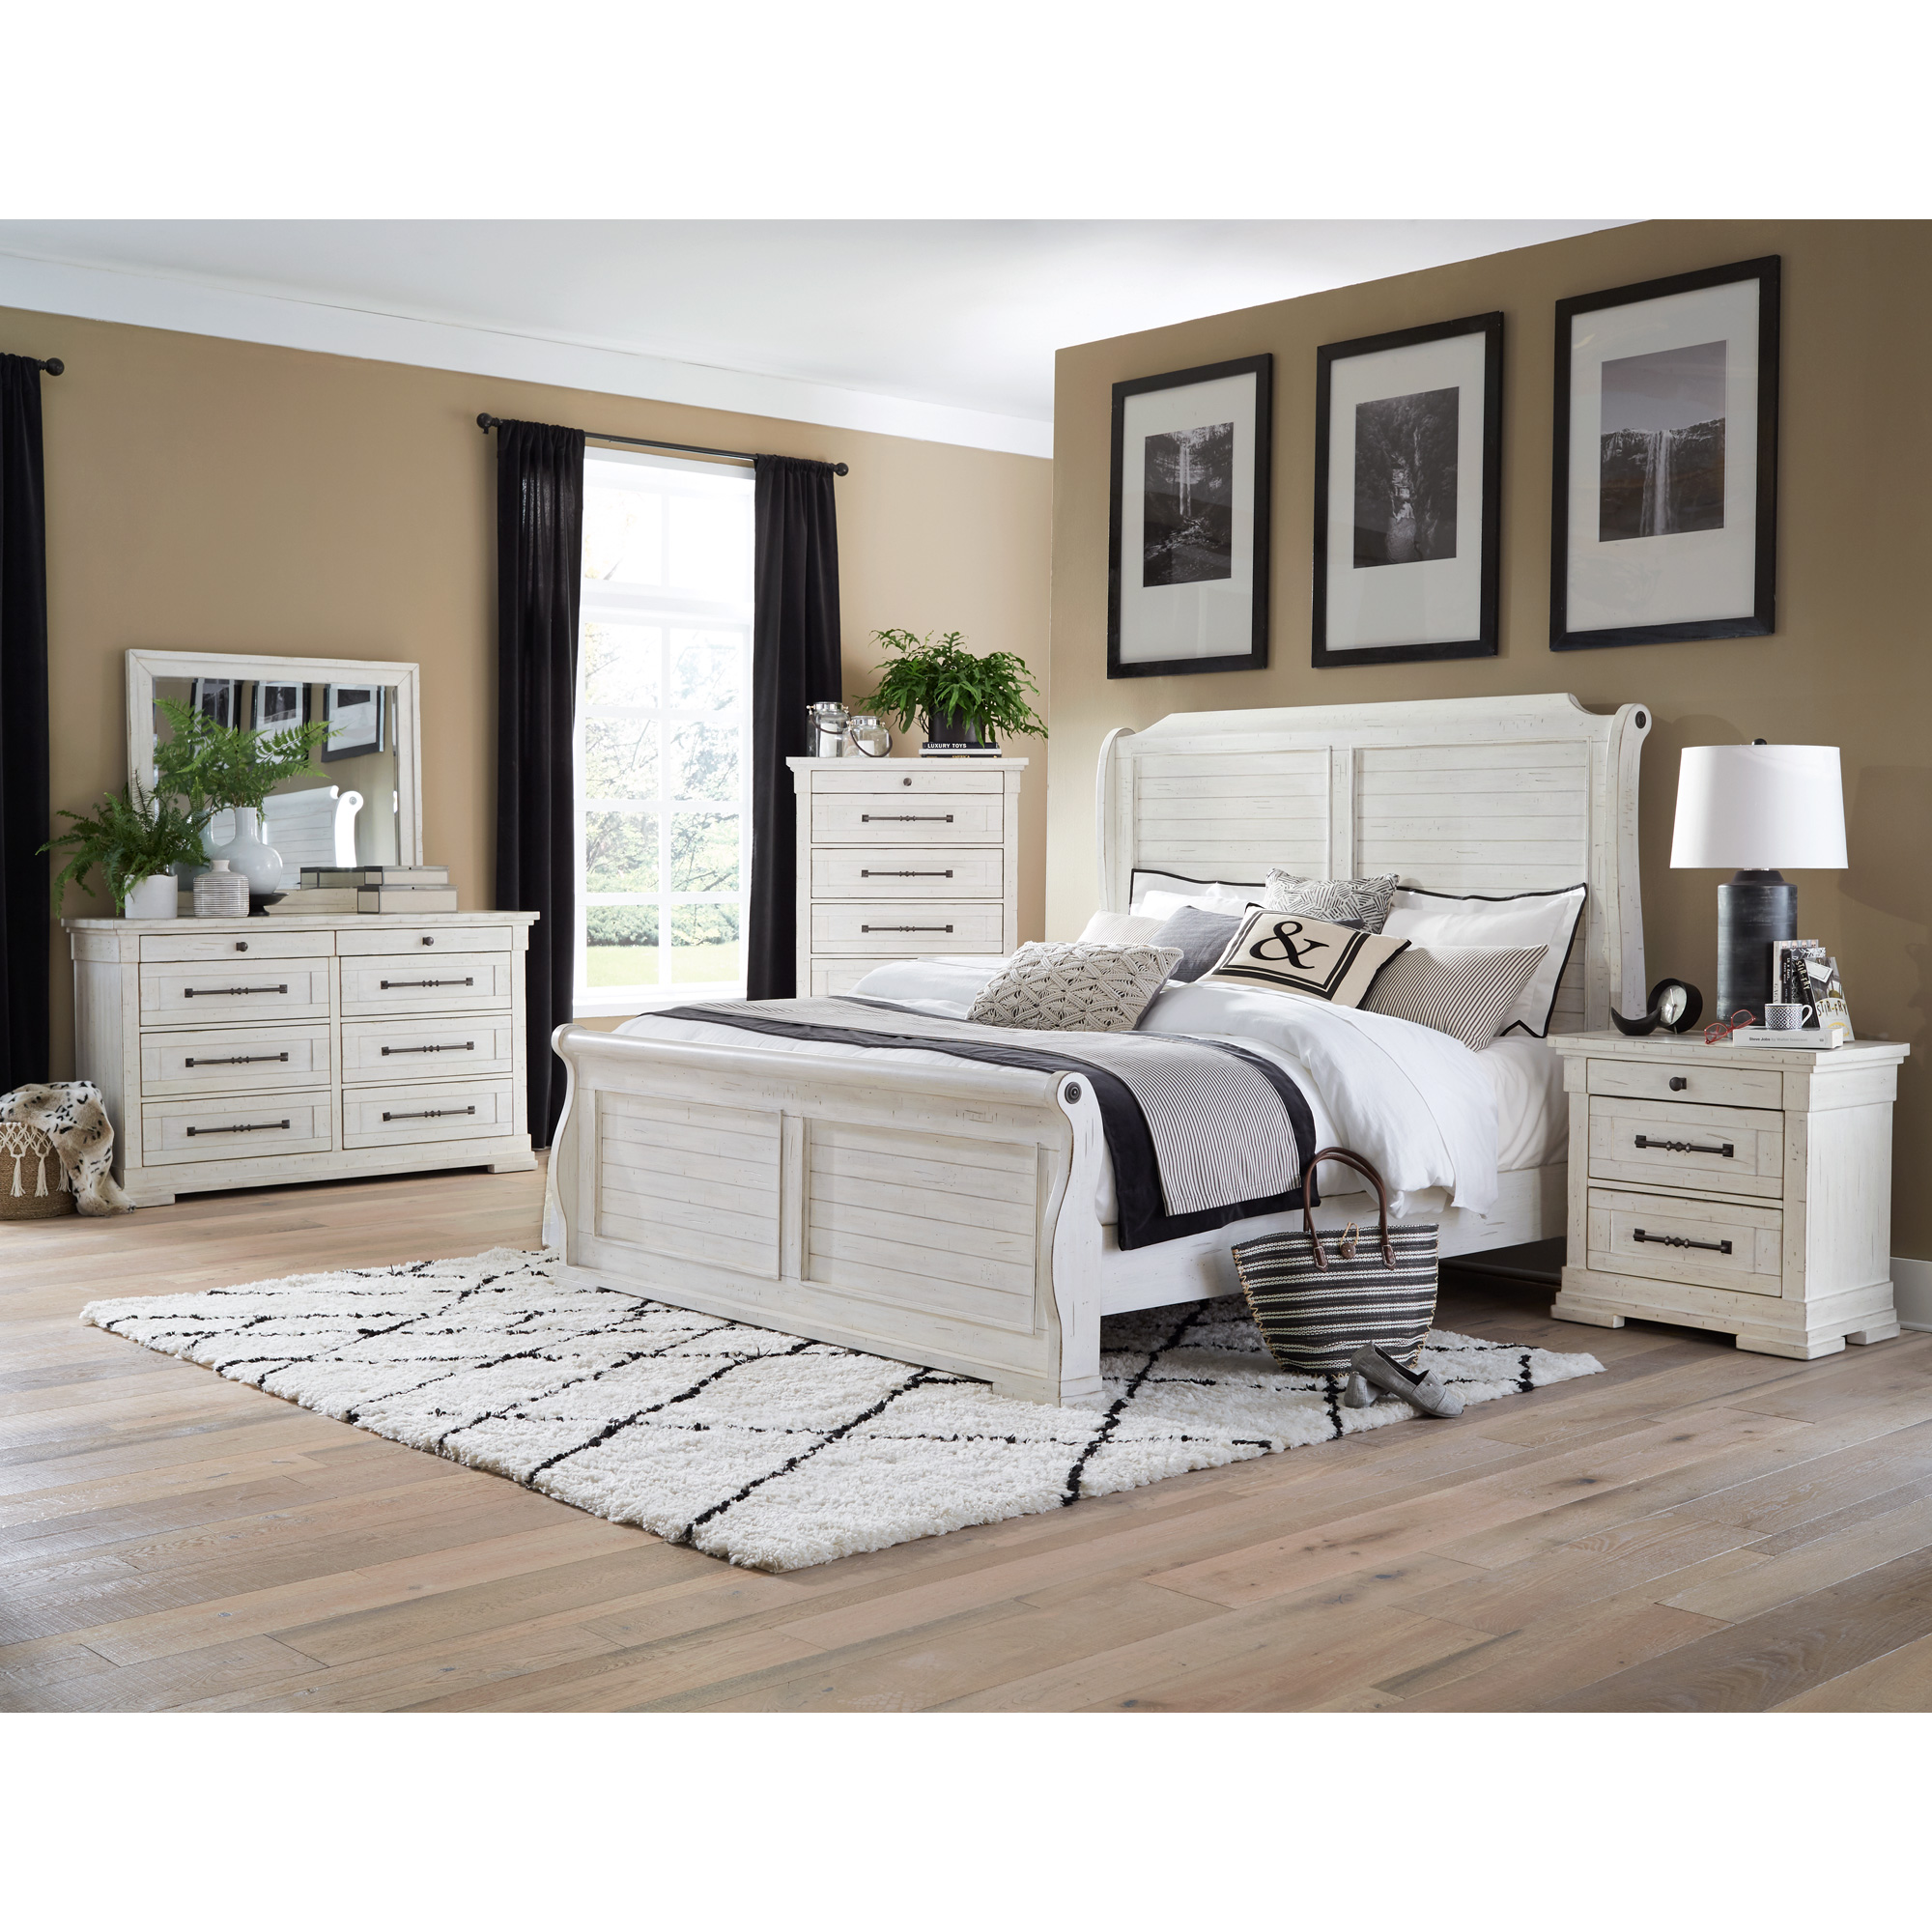 Lifestyle Enterprise | Bay Ridge White King 4 Piece Room Group Bedroom Set